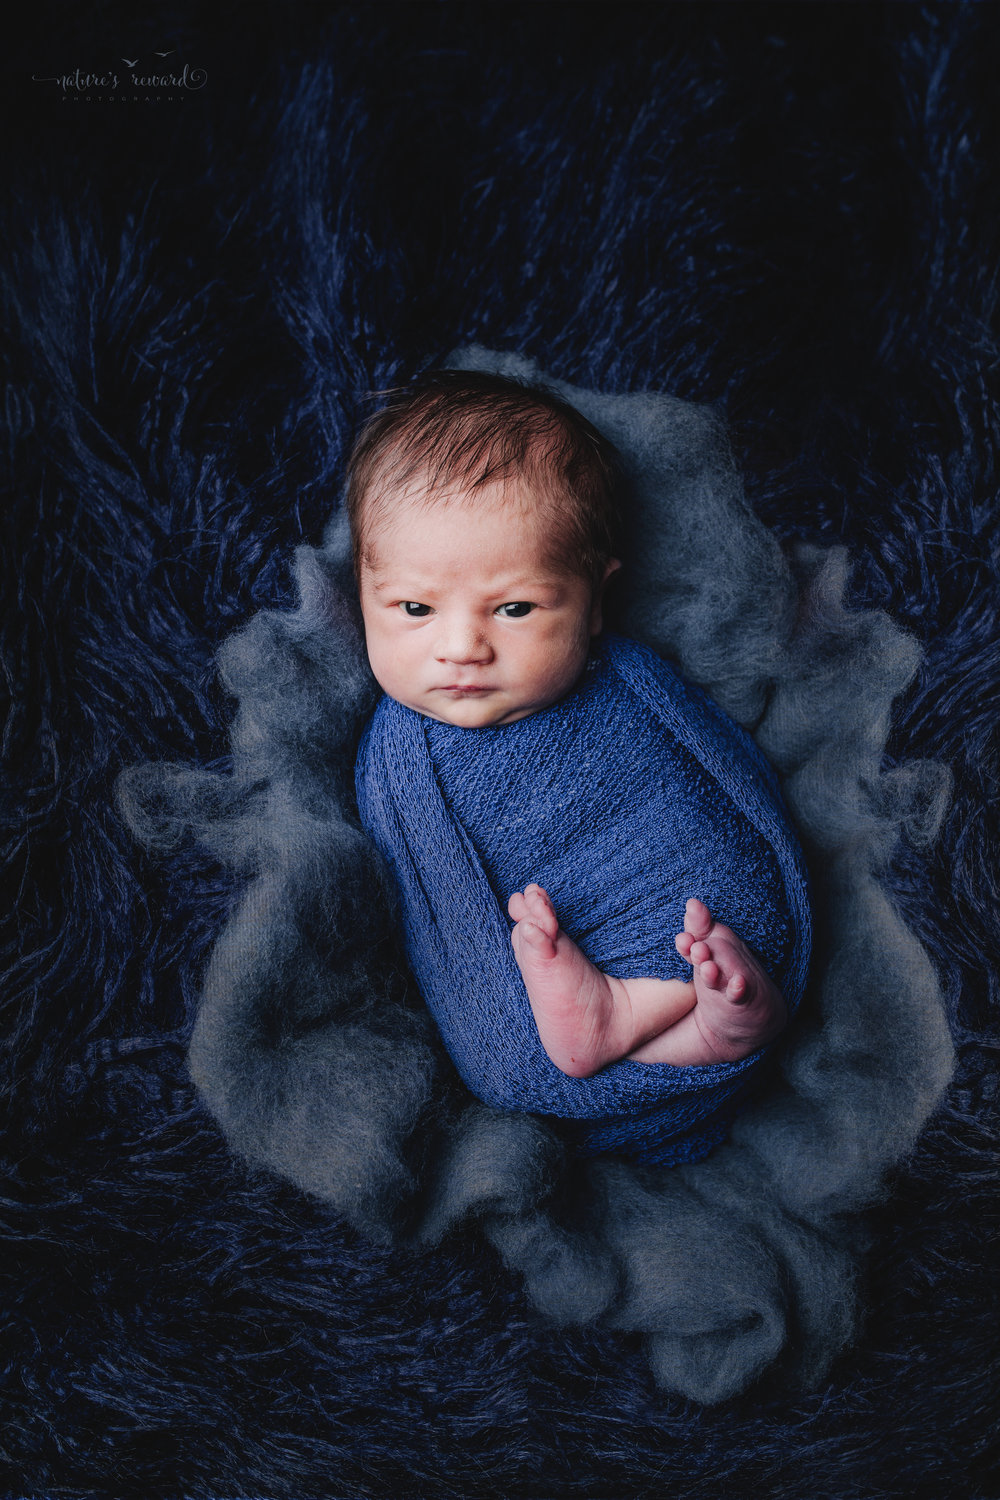 Newborn Baby Boy swaddled in blue on a bed of blue fur and cotton in this portrait by Nature's Reward Photography